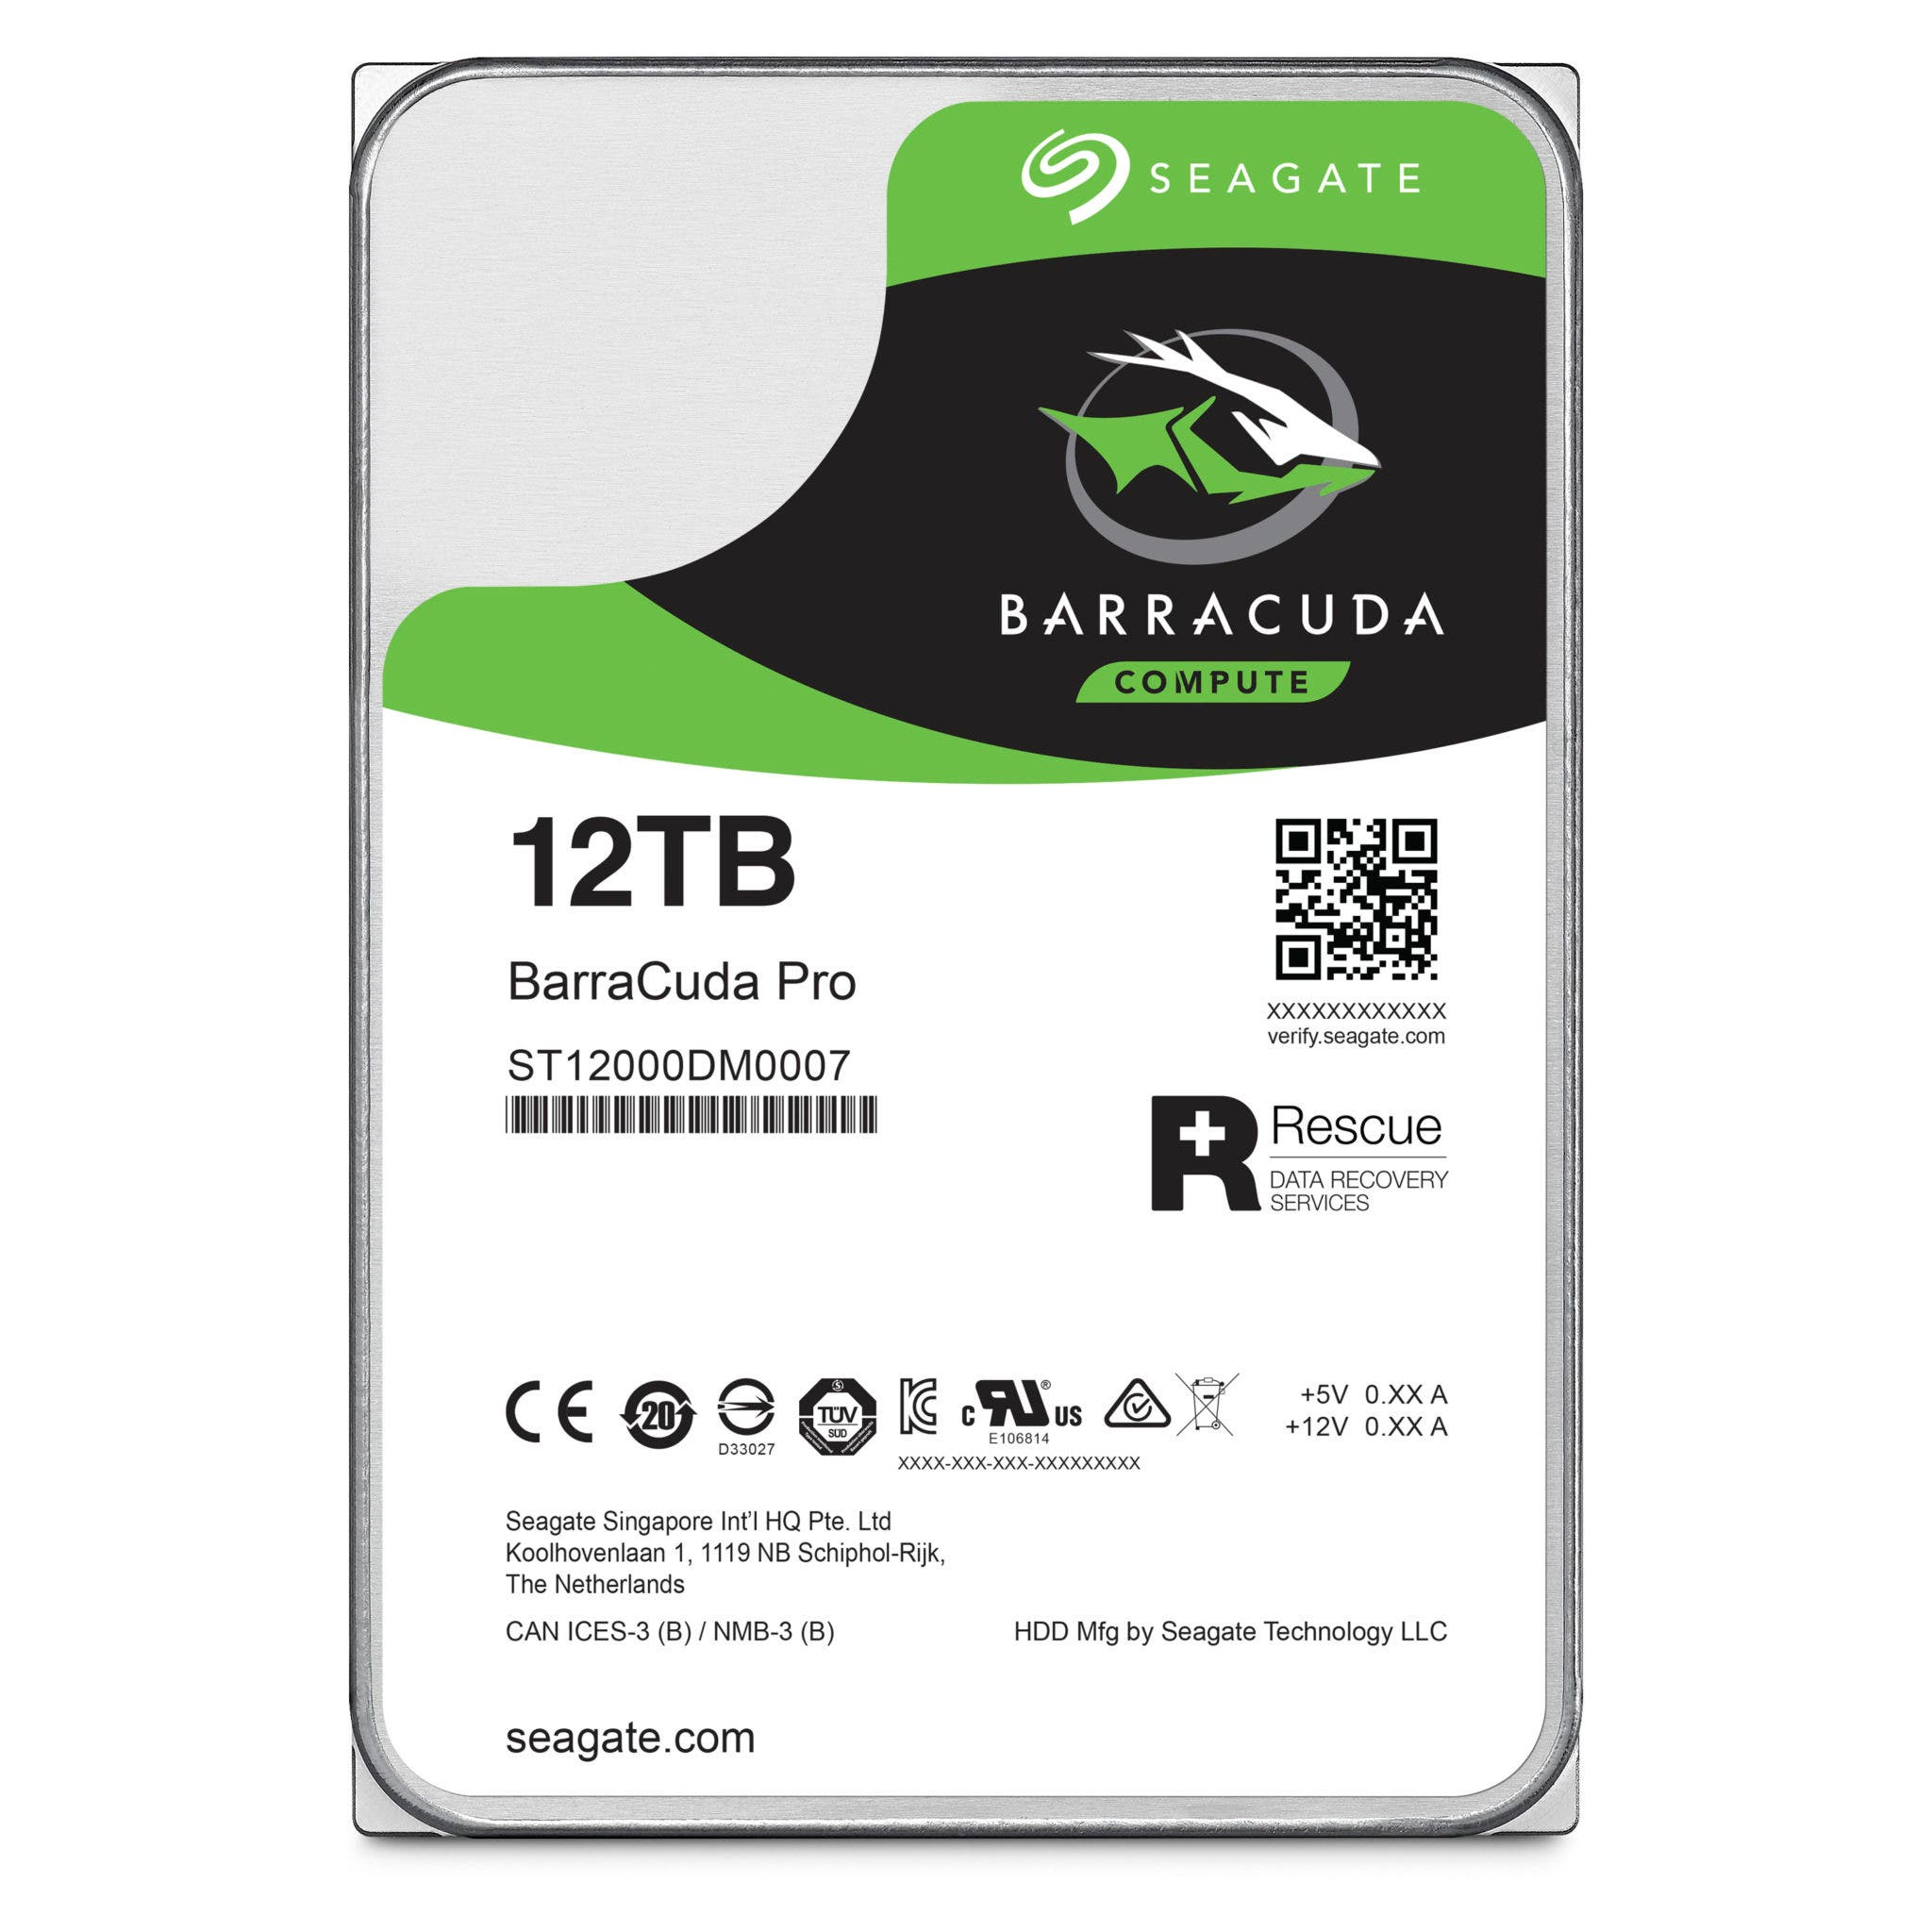 Seagate's IronWolf and BarraCuda Pro Hard Drives Can Store up to 12TB of Photos